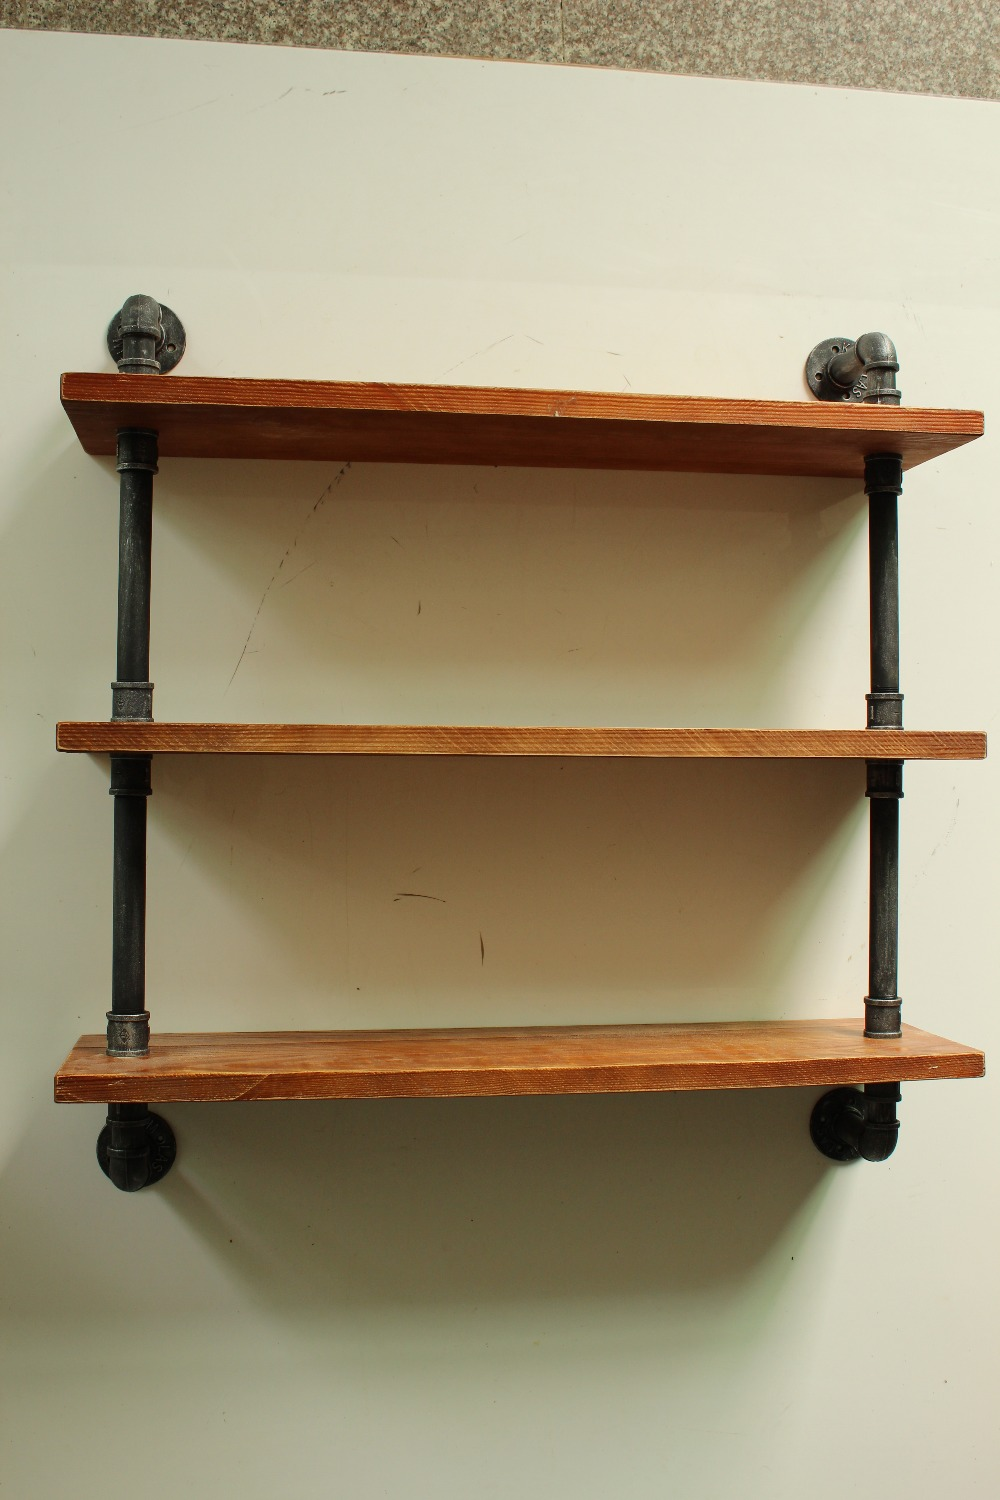 Aliexpress.com : Buy Industrial Style Shelf Pipe Shelving Galvanised Steel  Reclaimed Wood from Reliable wood steel stairs suppliers on Topower Vintage  ... - Aliexpress.com : Buy Industrial Style Shelf Pipe Shelving